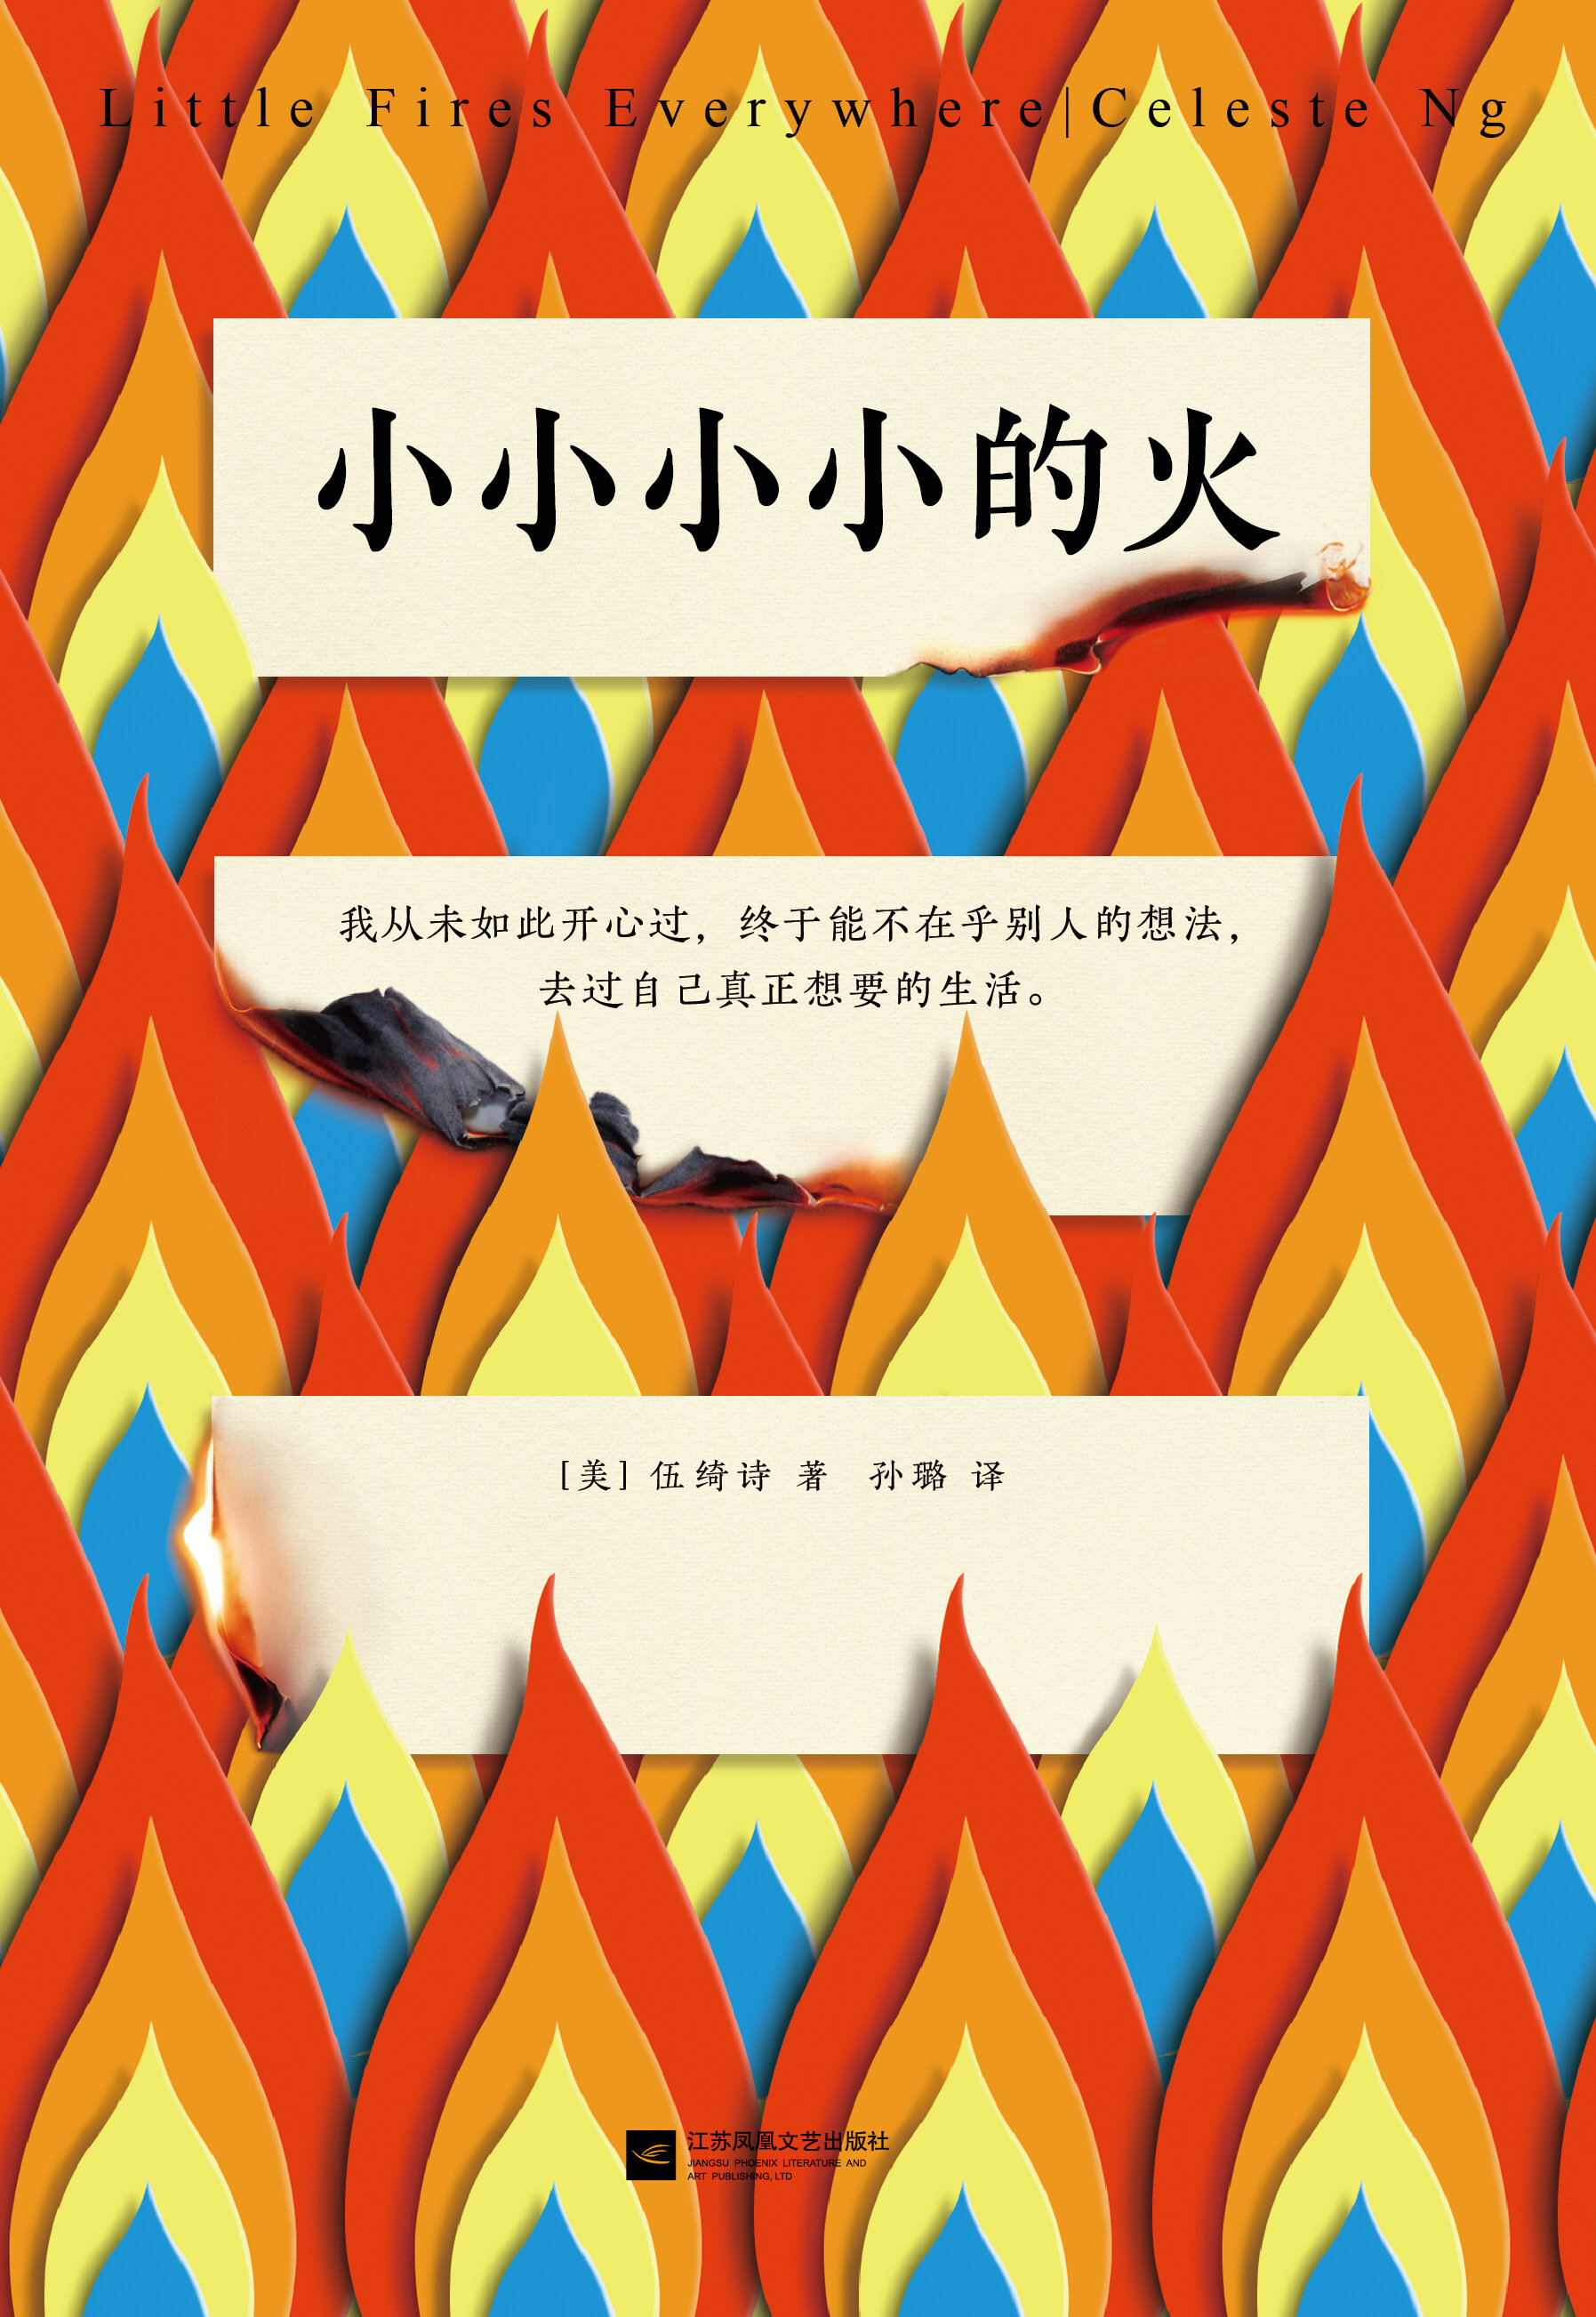 Little Fires Everywhere - Simplified Chinese (小小小小的火) front.jpg